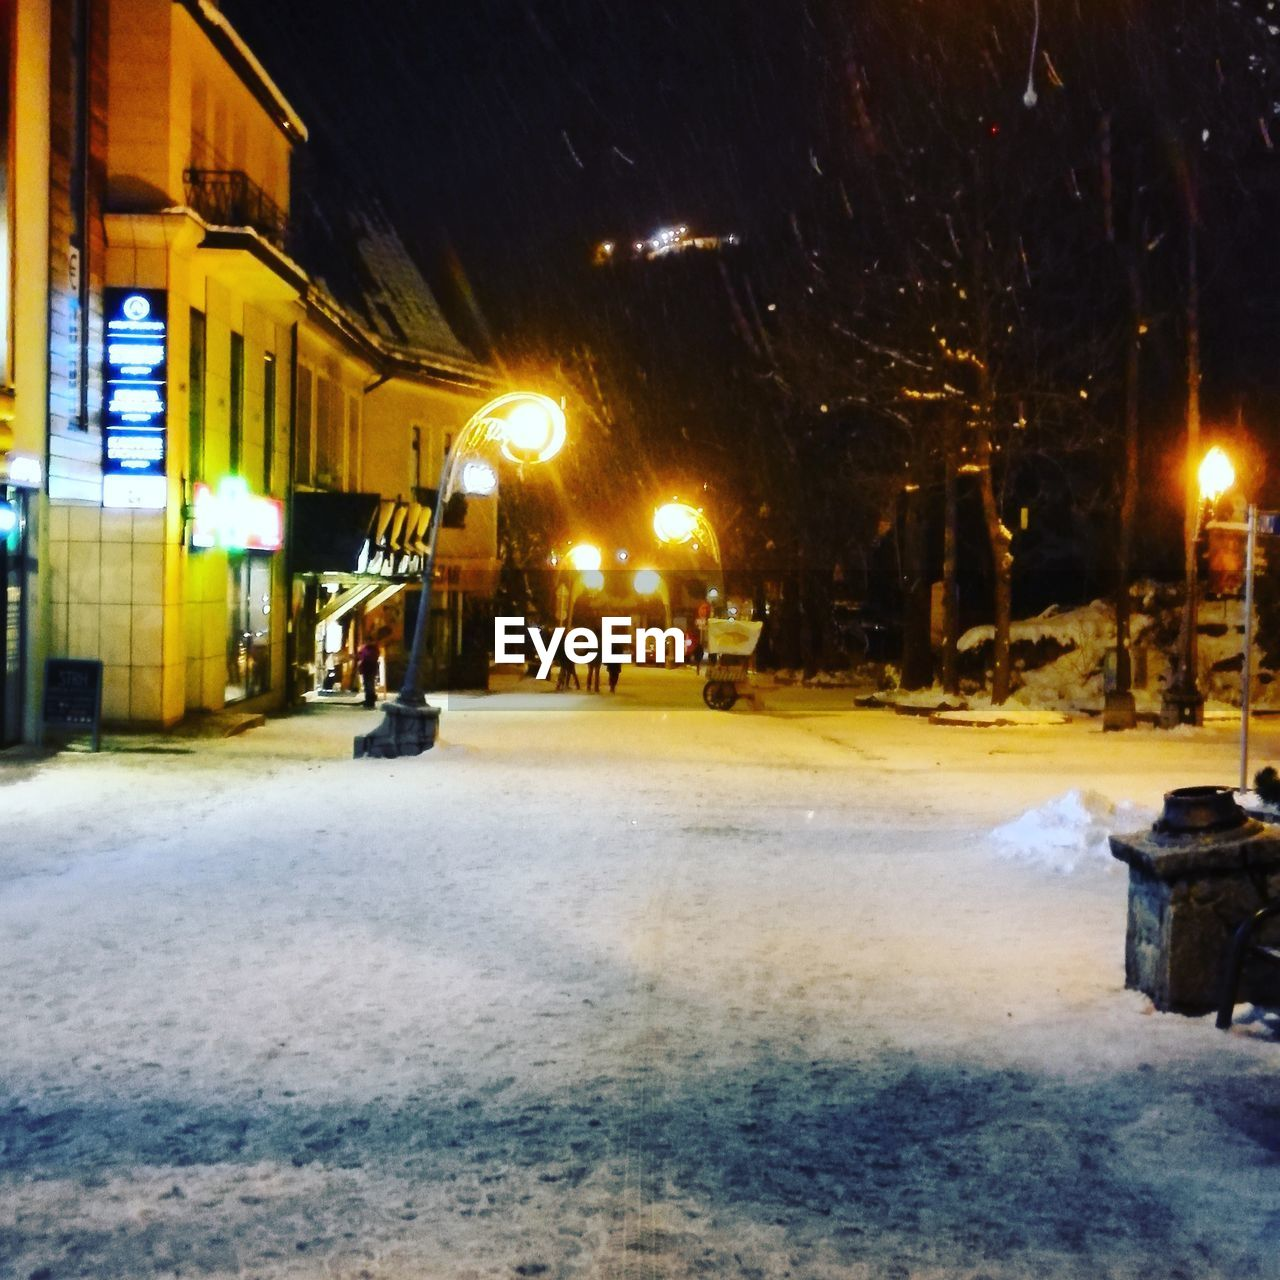 SNOW COVERED STREET IN CITY AT NIGHT